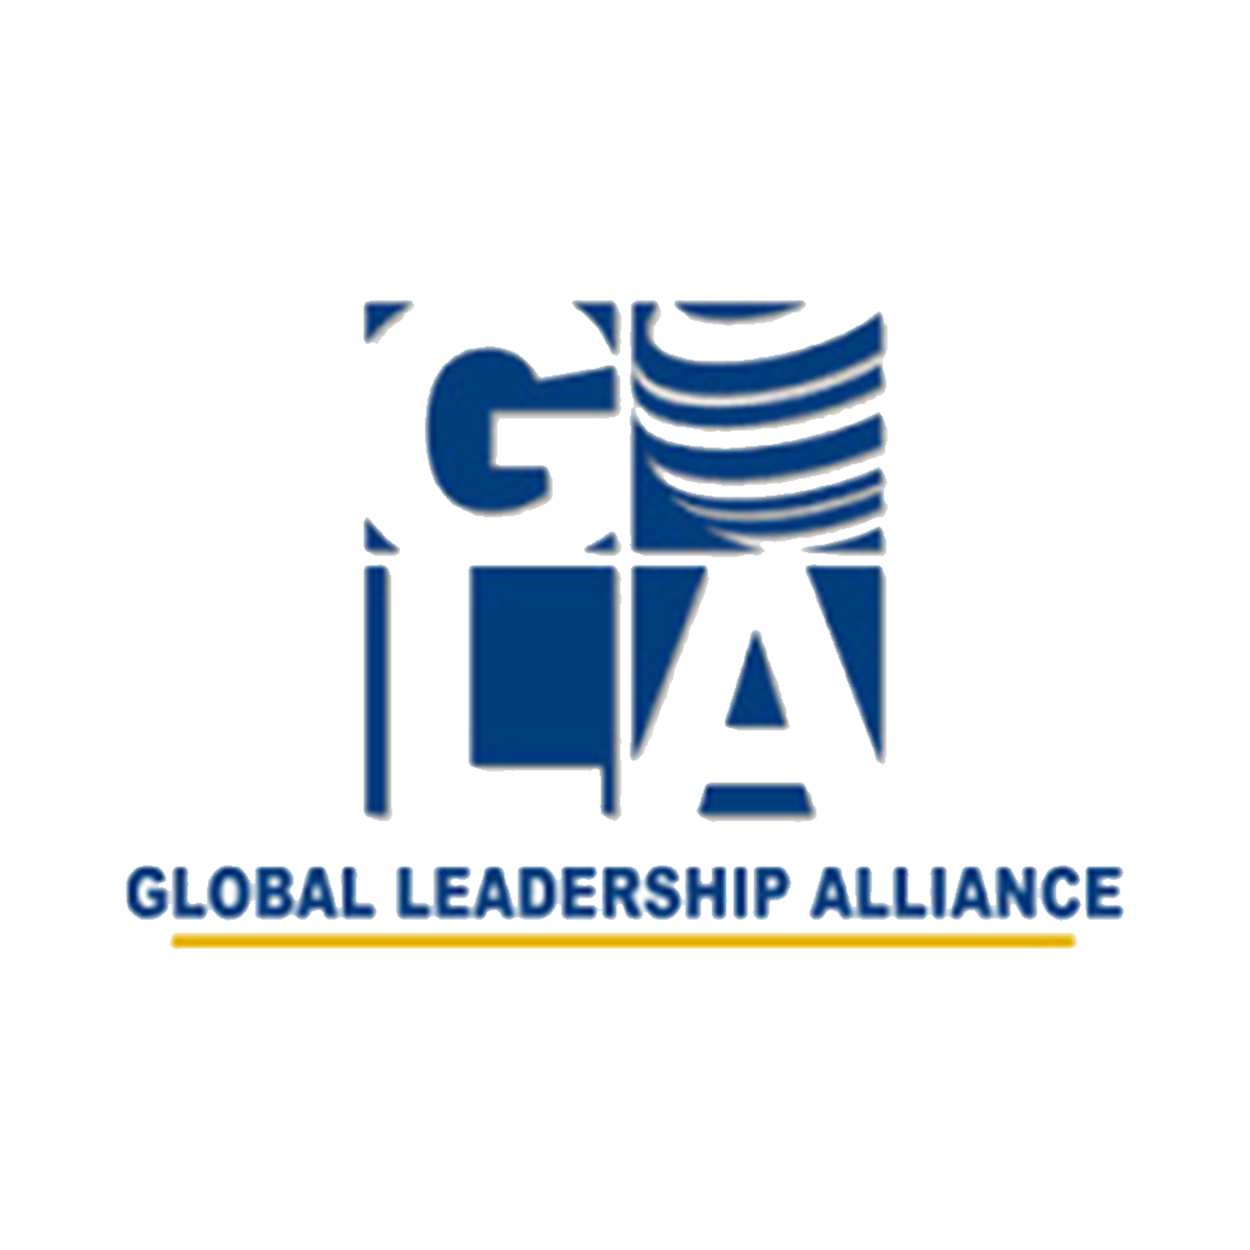 Global Leadership Alliance - Utilized HTML, CSS, ASP.NET, SQL and VB Script, converted an online HTML/Microsoft Access database web solution to an ASP.NET/SQL server solution for company's online measurement system. Also implemented an on-site Microsoft Exchange Server Email solution and eventually migrated end-users to Microsoft Office 365 and Microsoft CRM. Created custom workflows within the SharePoint and CRM online systems. Provided on-site and web-based training. Provided business process analysis and services.